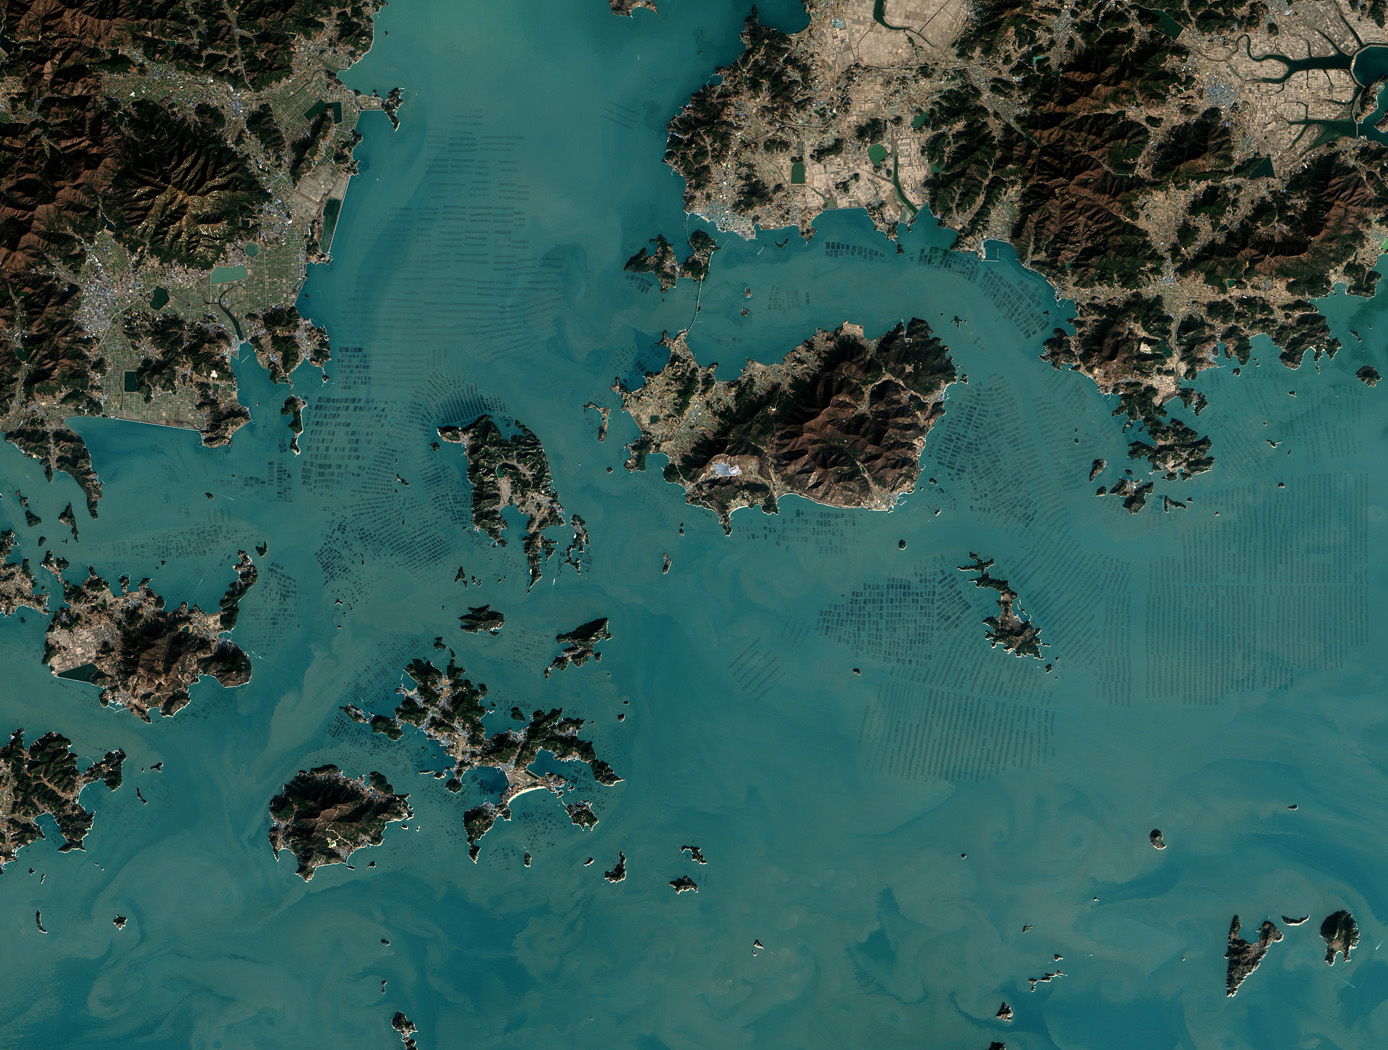 Seaweed Farms in South Korea acquired by The Operational Land Imager (OLI) on Landsat 8